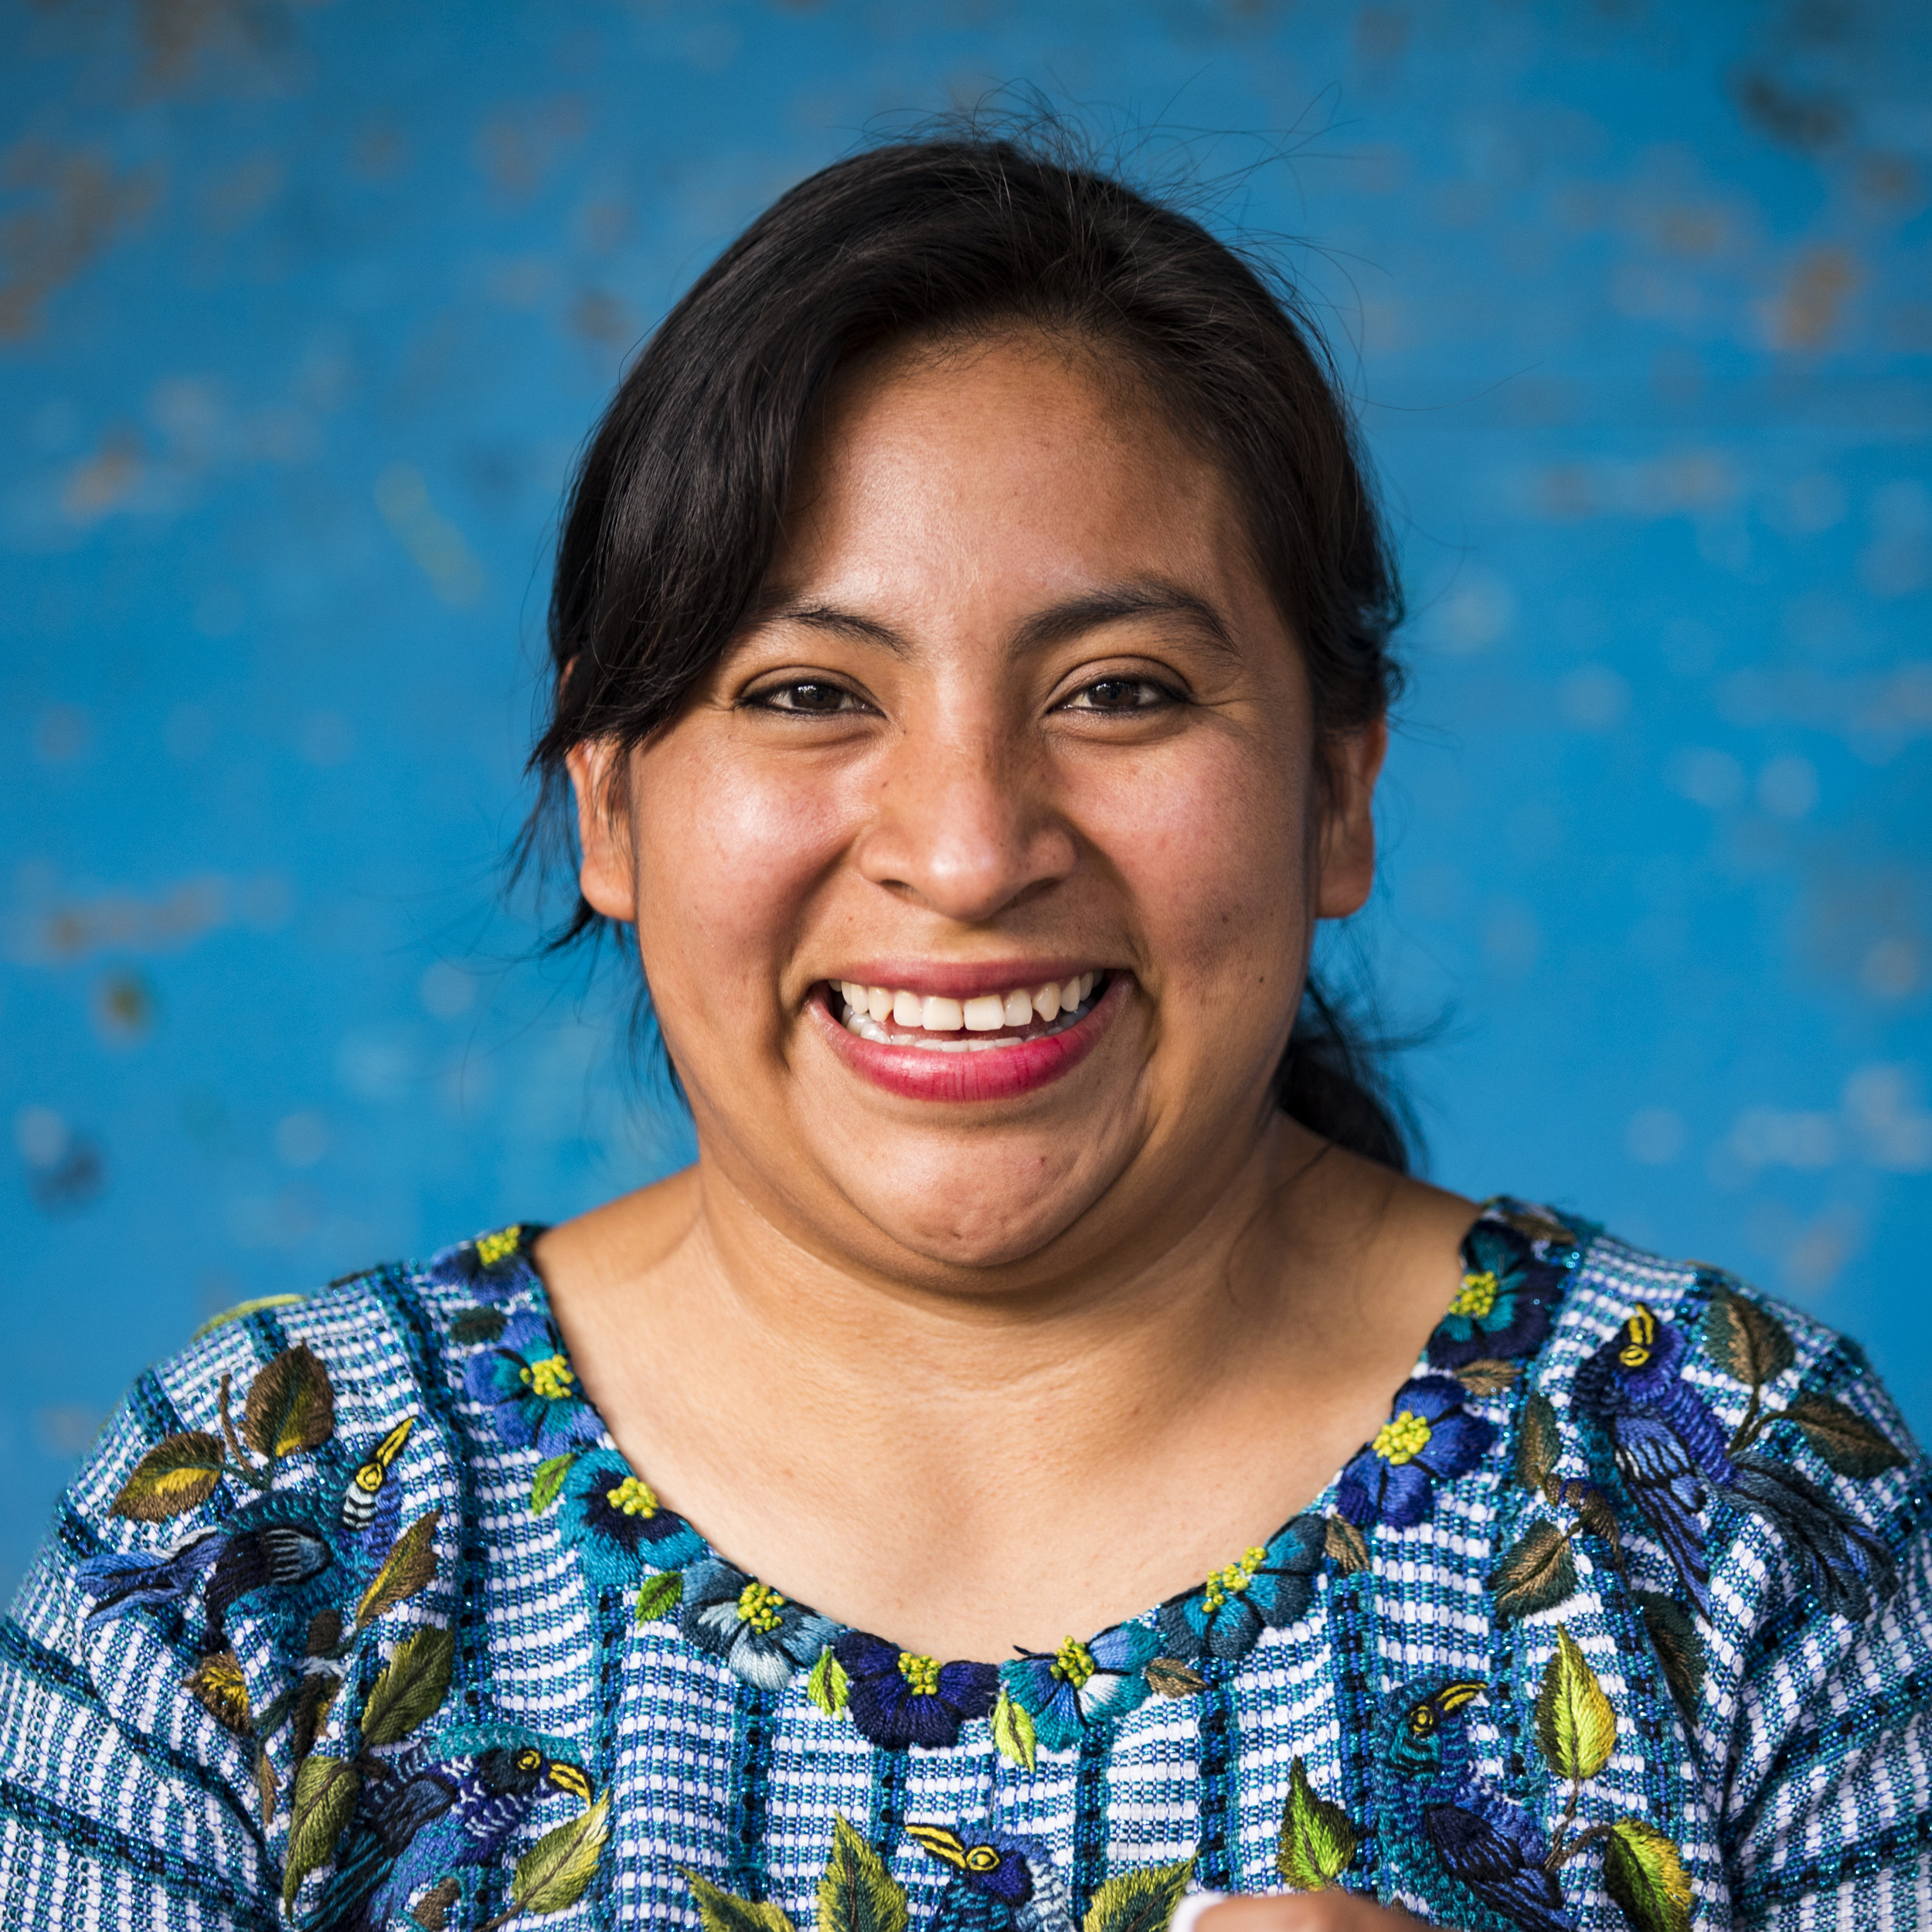 Ana Mesia is a mother of two, a teacher, and a Living Threads Co. artisan from Santiago Atitlan, Guatemala